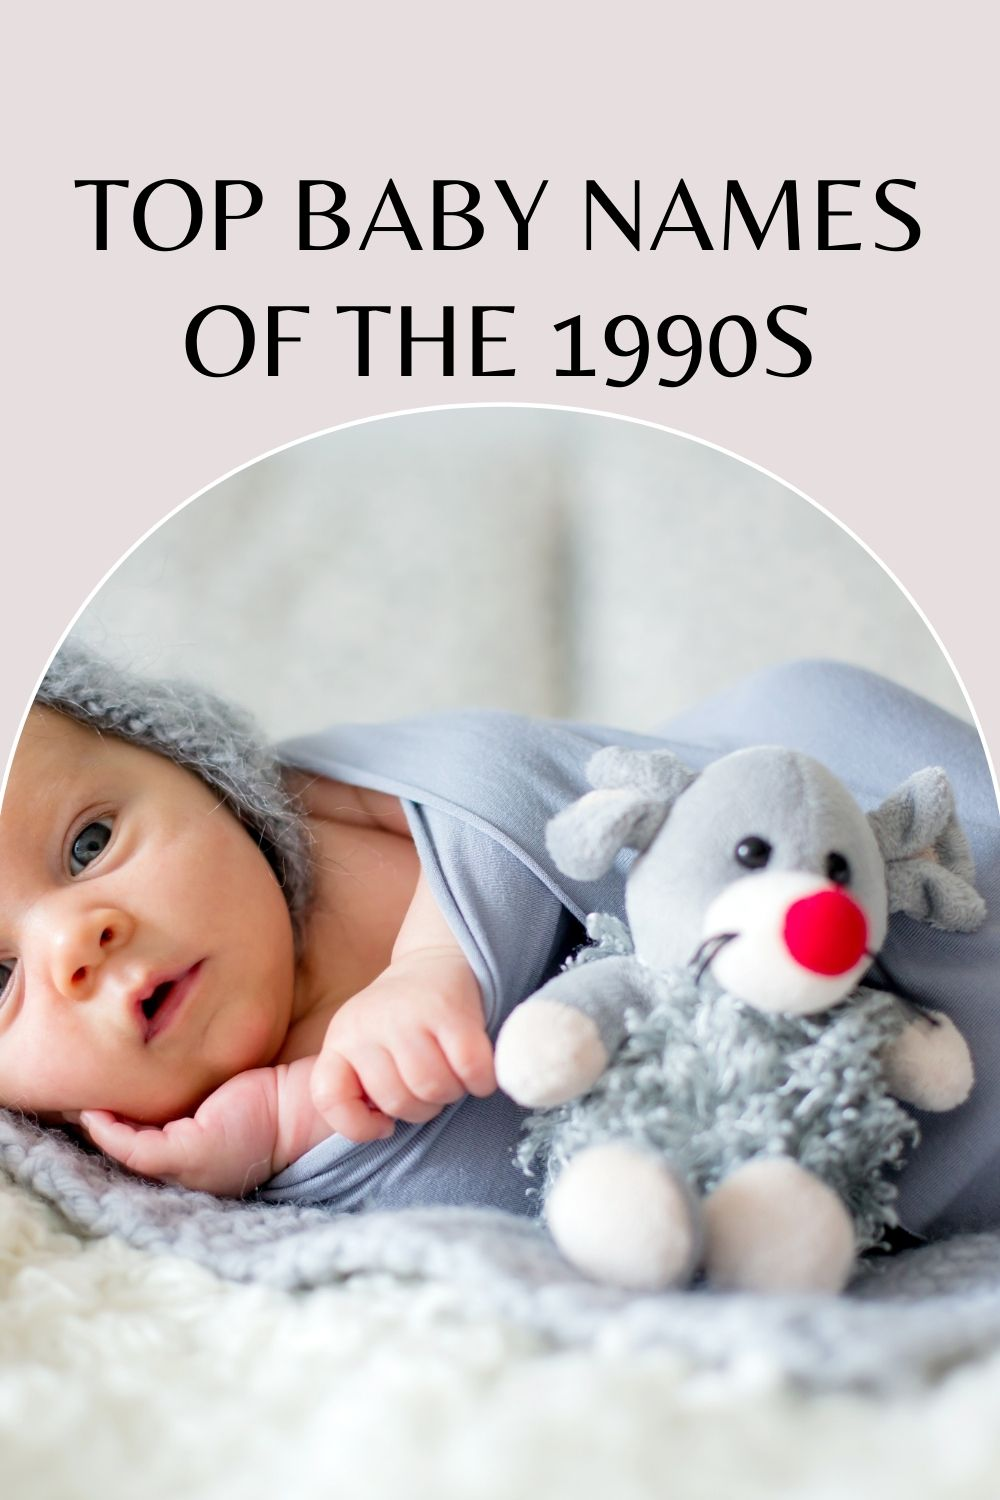 Top Baby Names in the 1990s